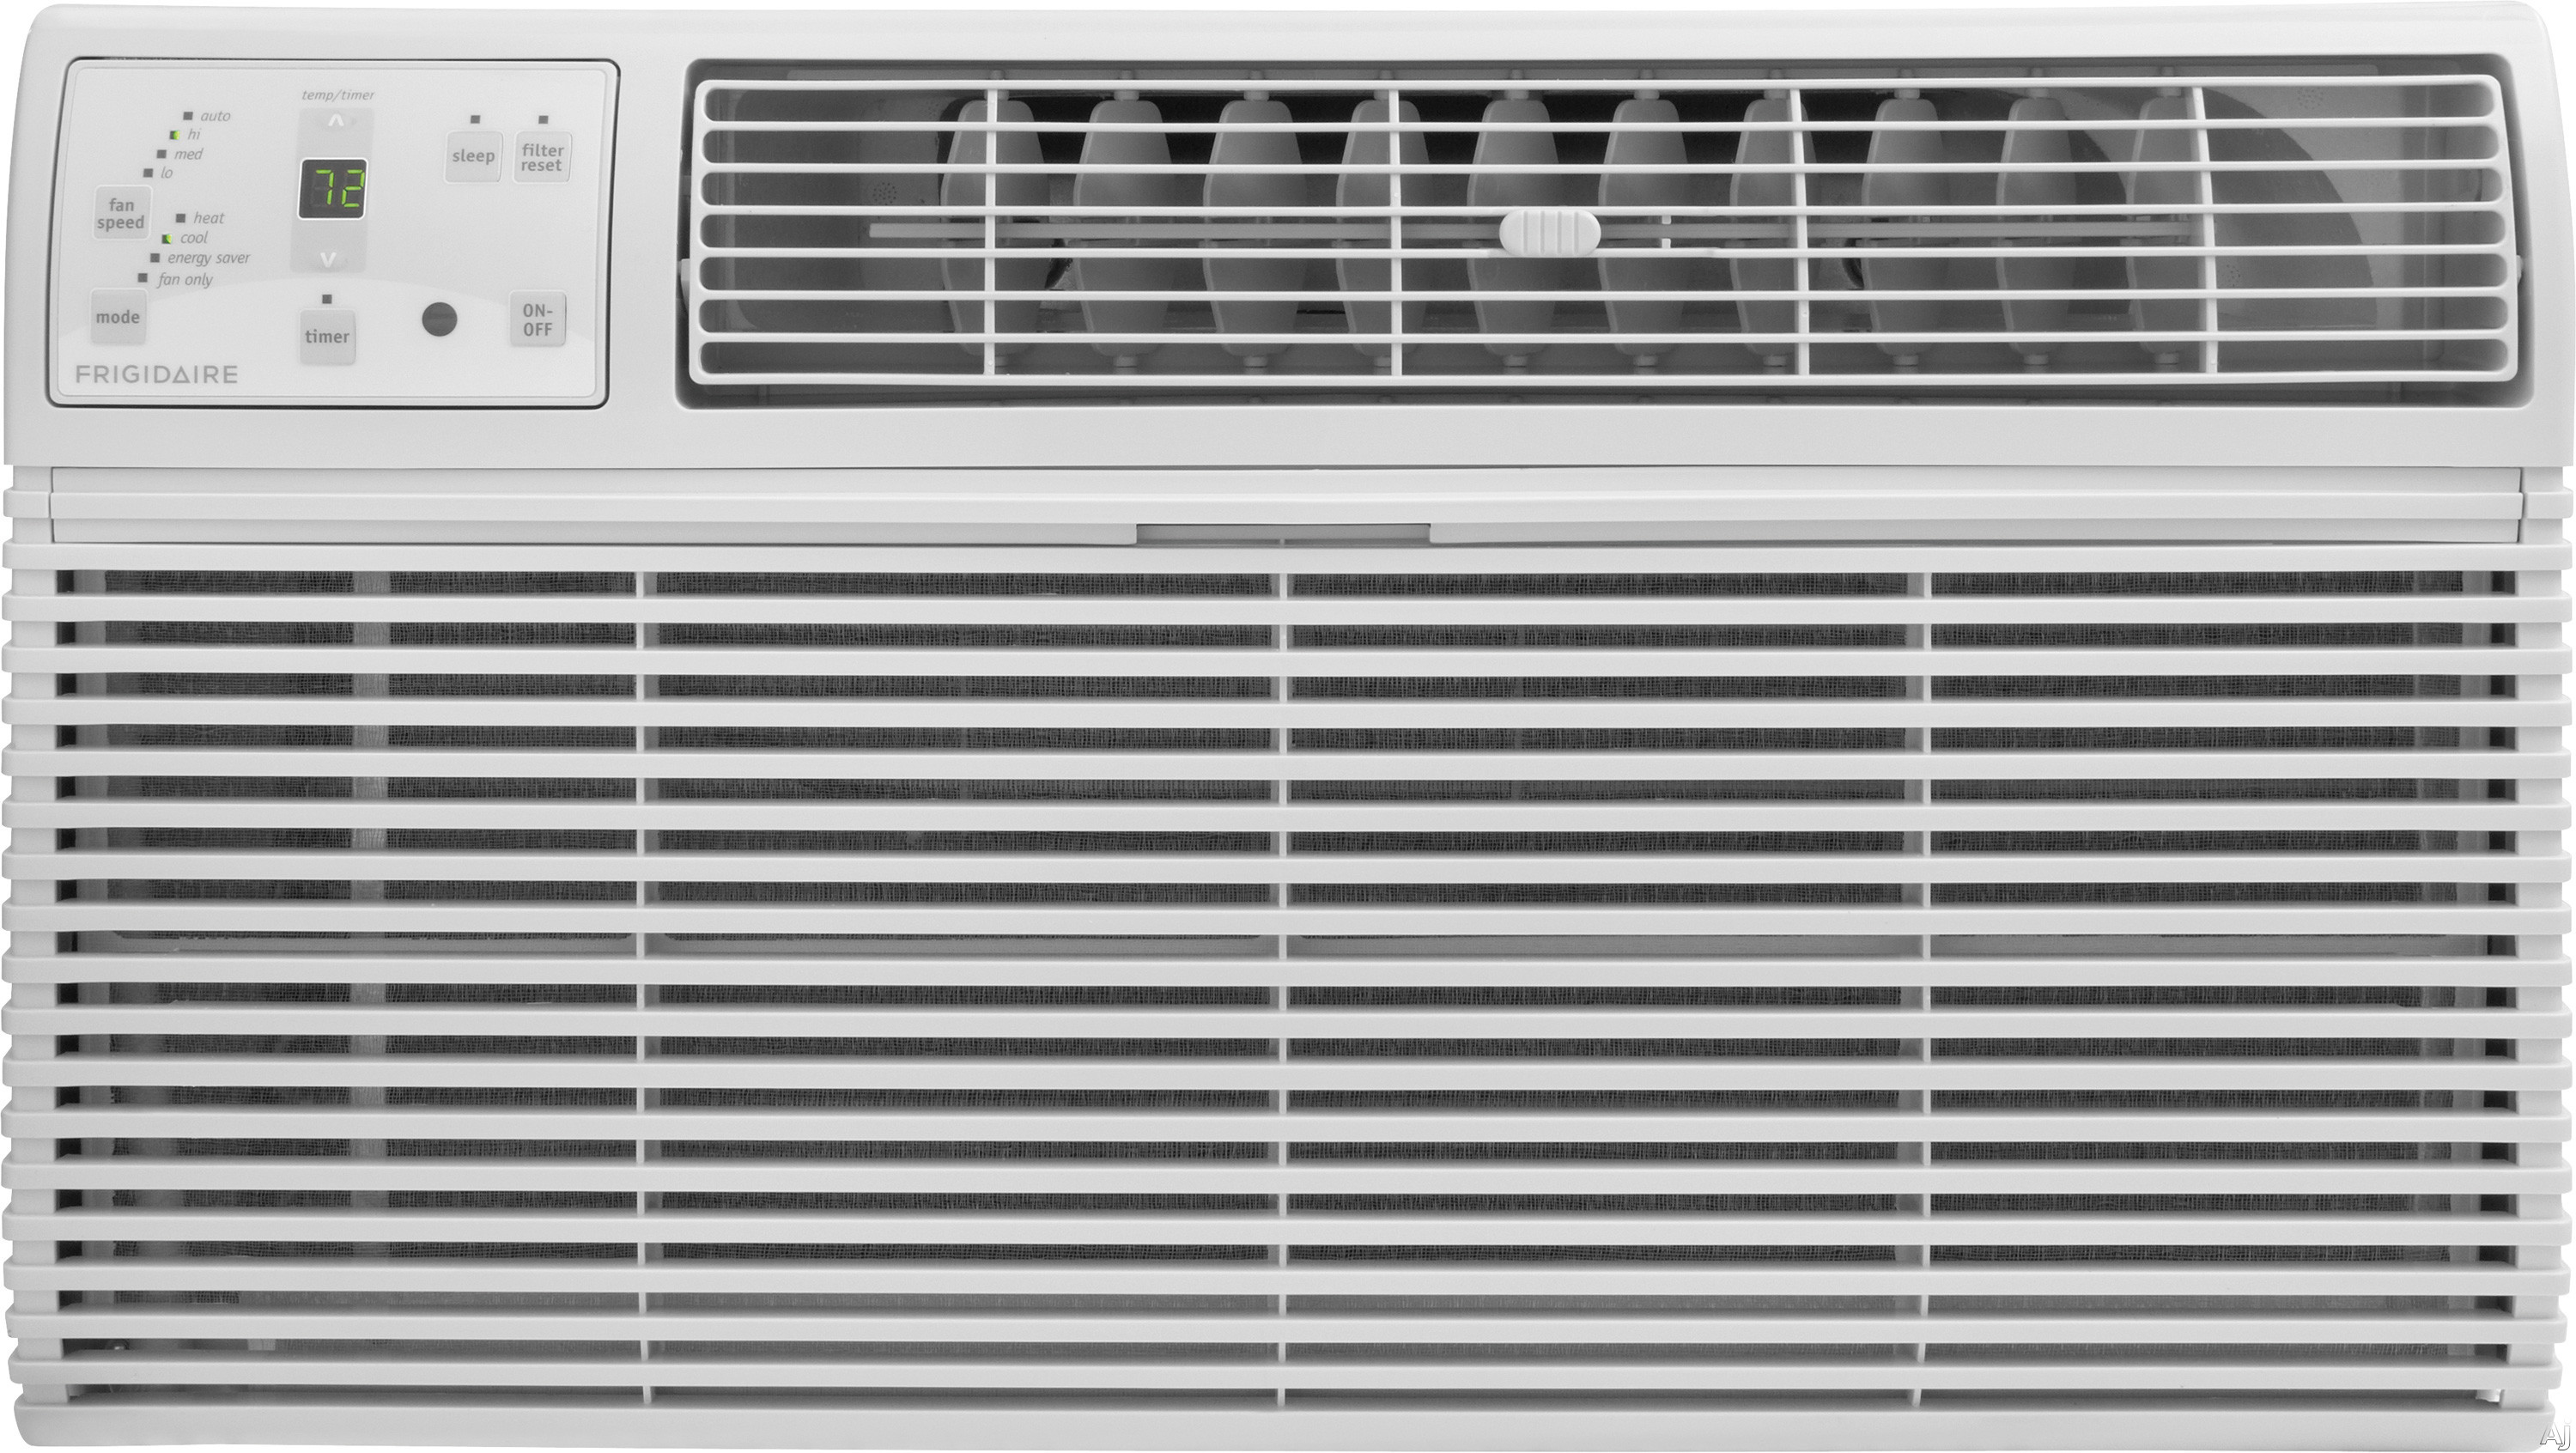 Frigidaire FFTH1422R2 14,000 BTU Thru-the-Wall Air Conditioner with 10,600 BTU Electric Heat, 9.3 EER, R-410A Refrigerant, 4.3 Pts/Hr Dehumidification, Energy Saver and 230/208 Volts FFTH1422R2